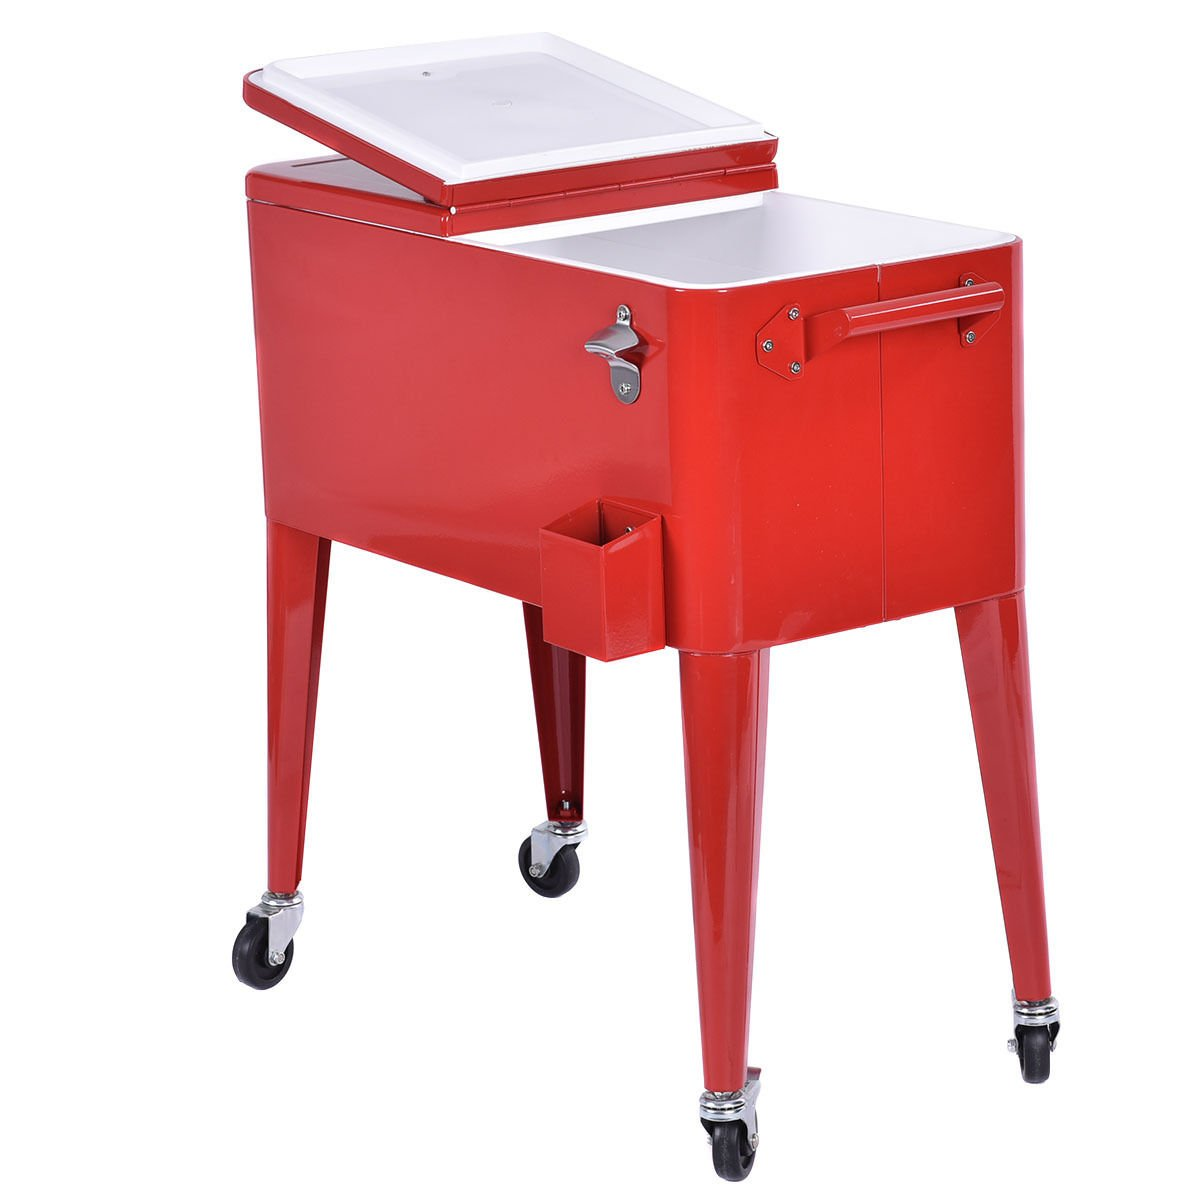 Merveilleux Amazon.com: Giantex 80 Quart Patio Rolling Cooler Cart Ice Beer Beverage  Chest Party Portable With Wheels, Red: Sports U0026 Outdoors